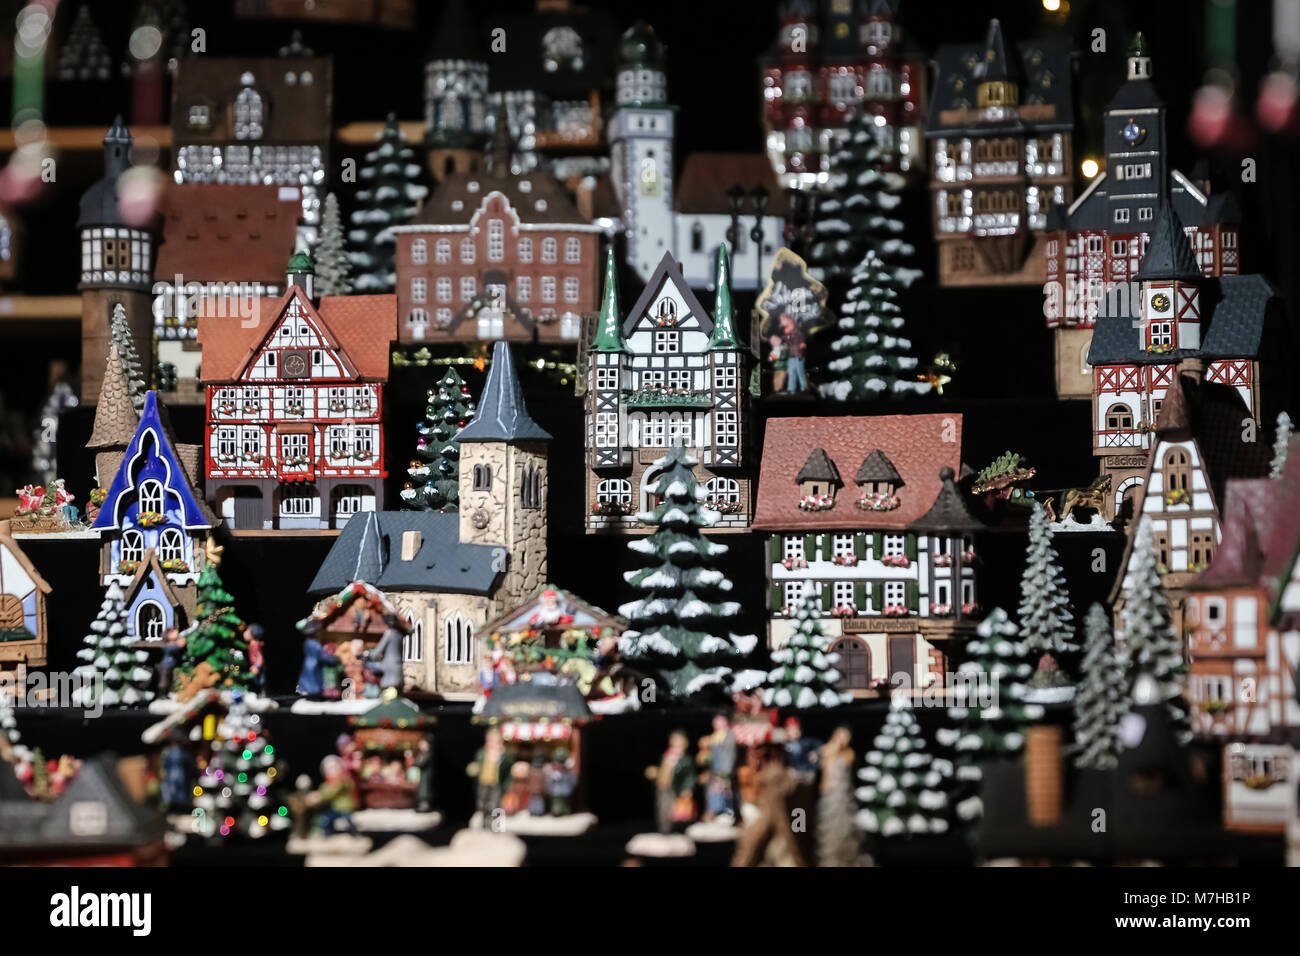 House Shaped Candle Holders in Neptunbrunnen Christmas Market, Berlin, Germany - Stock Image